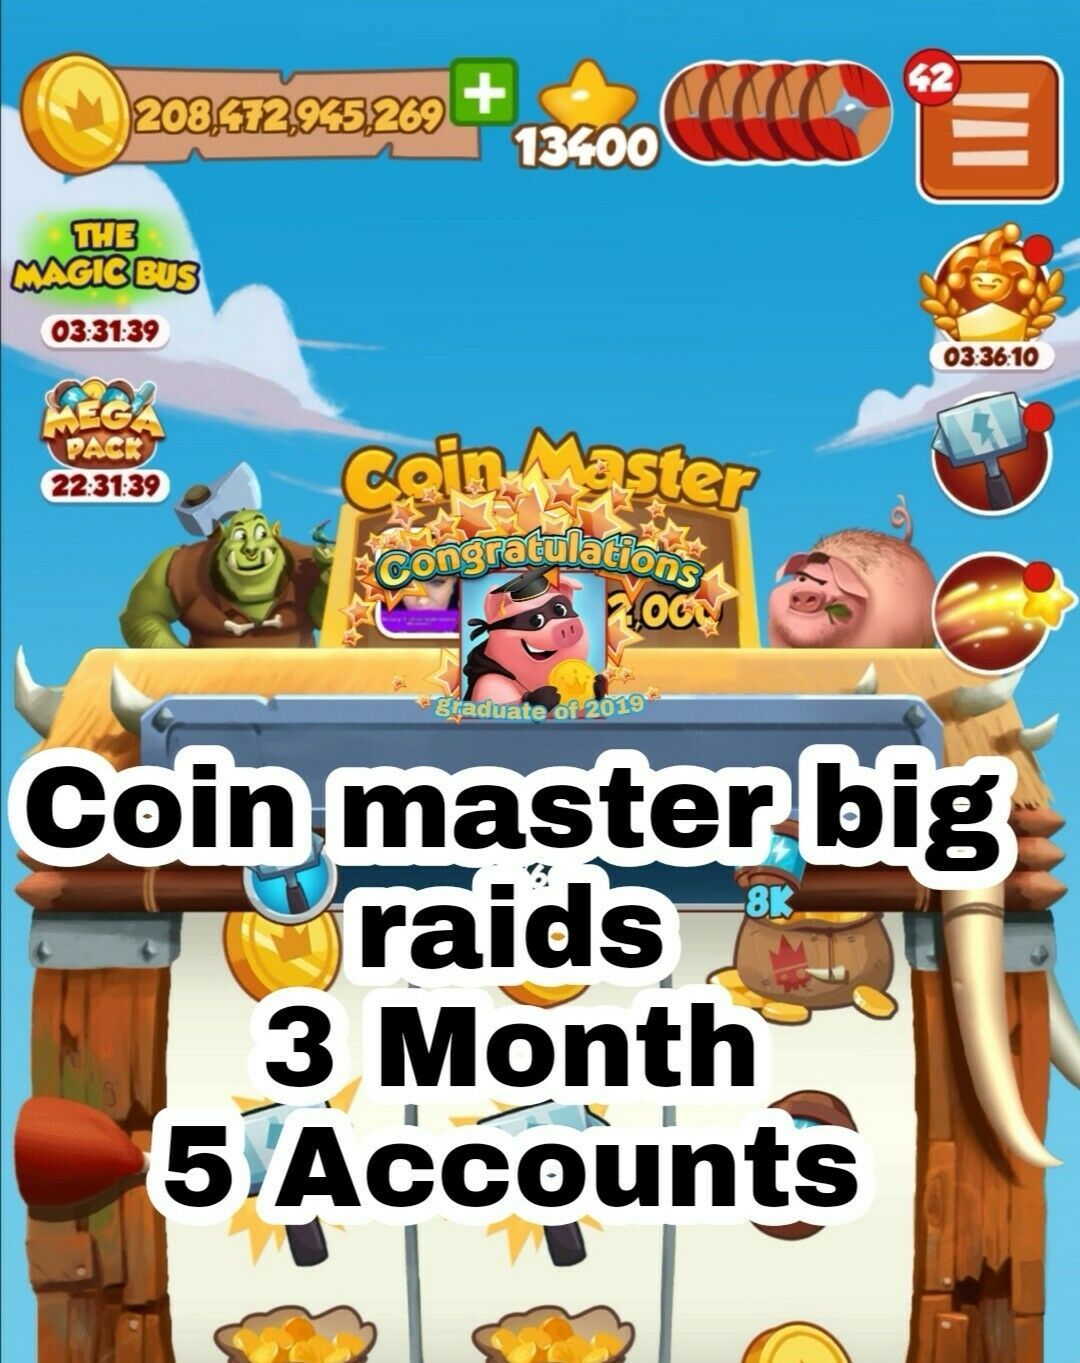 Coin Master Big Raids 3 Months on 5 accounts help with Viking/building ect